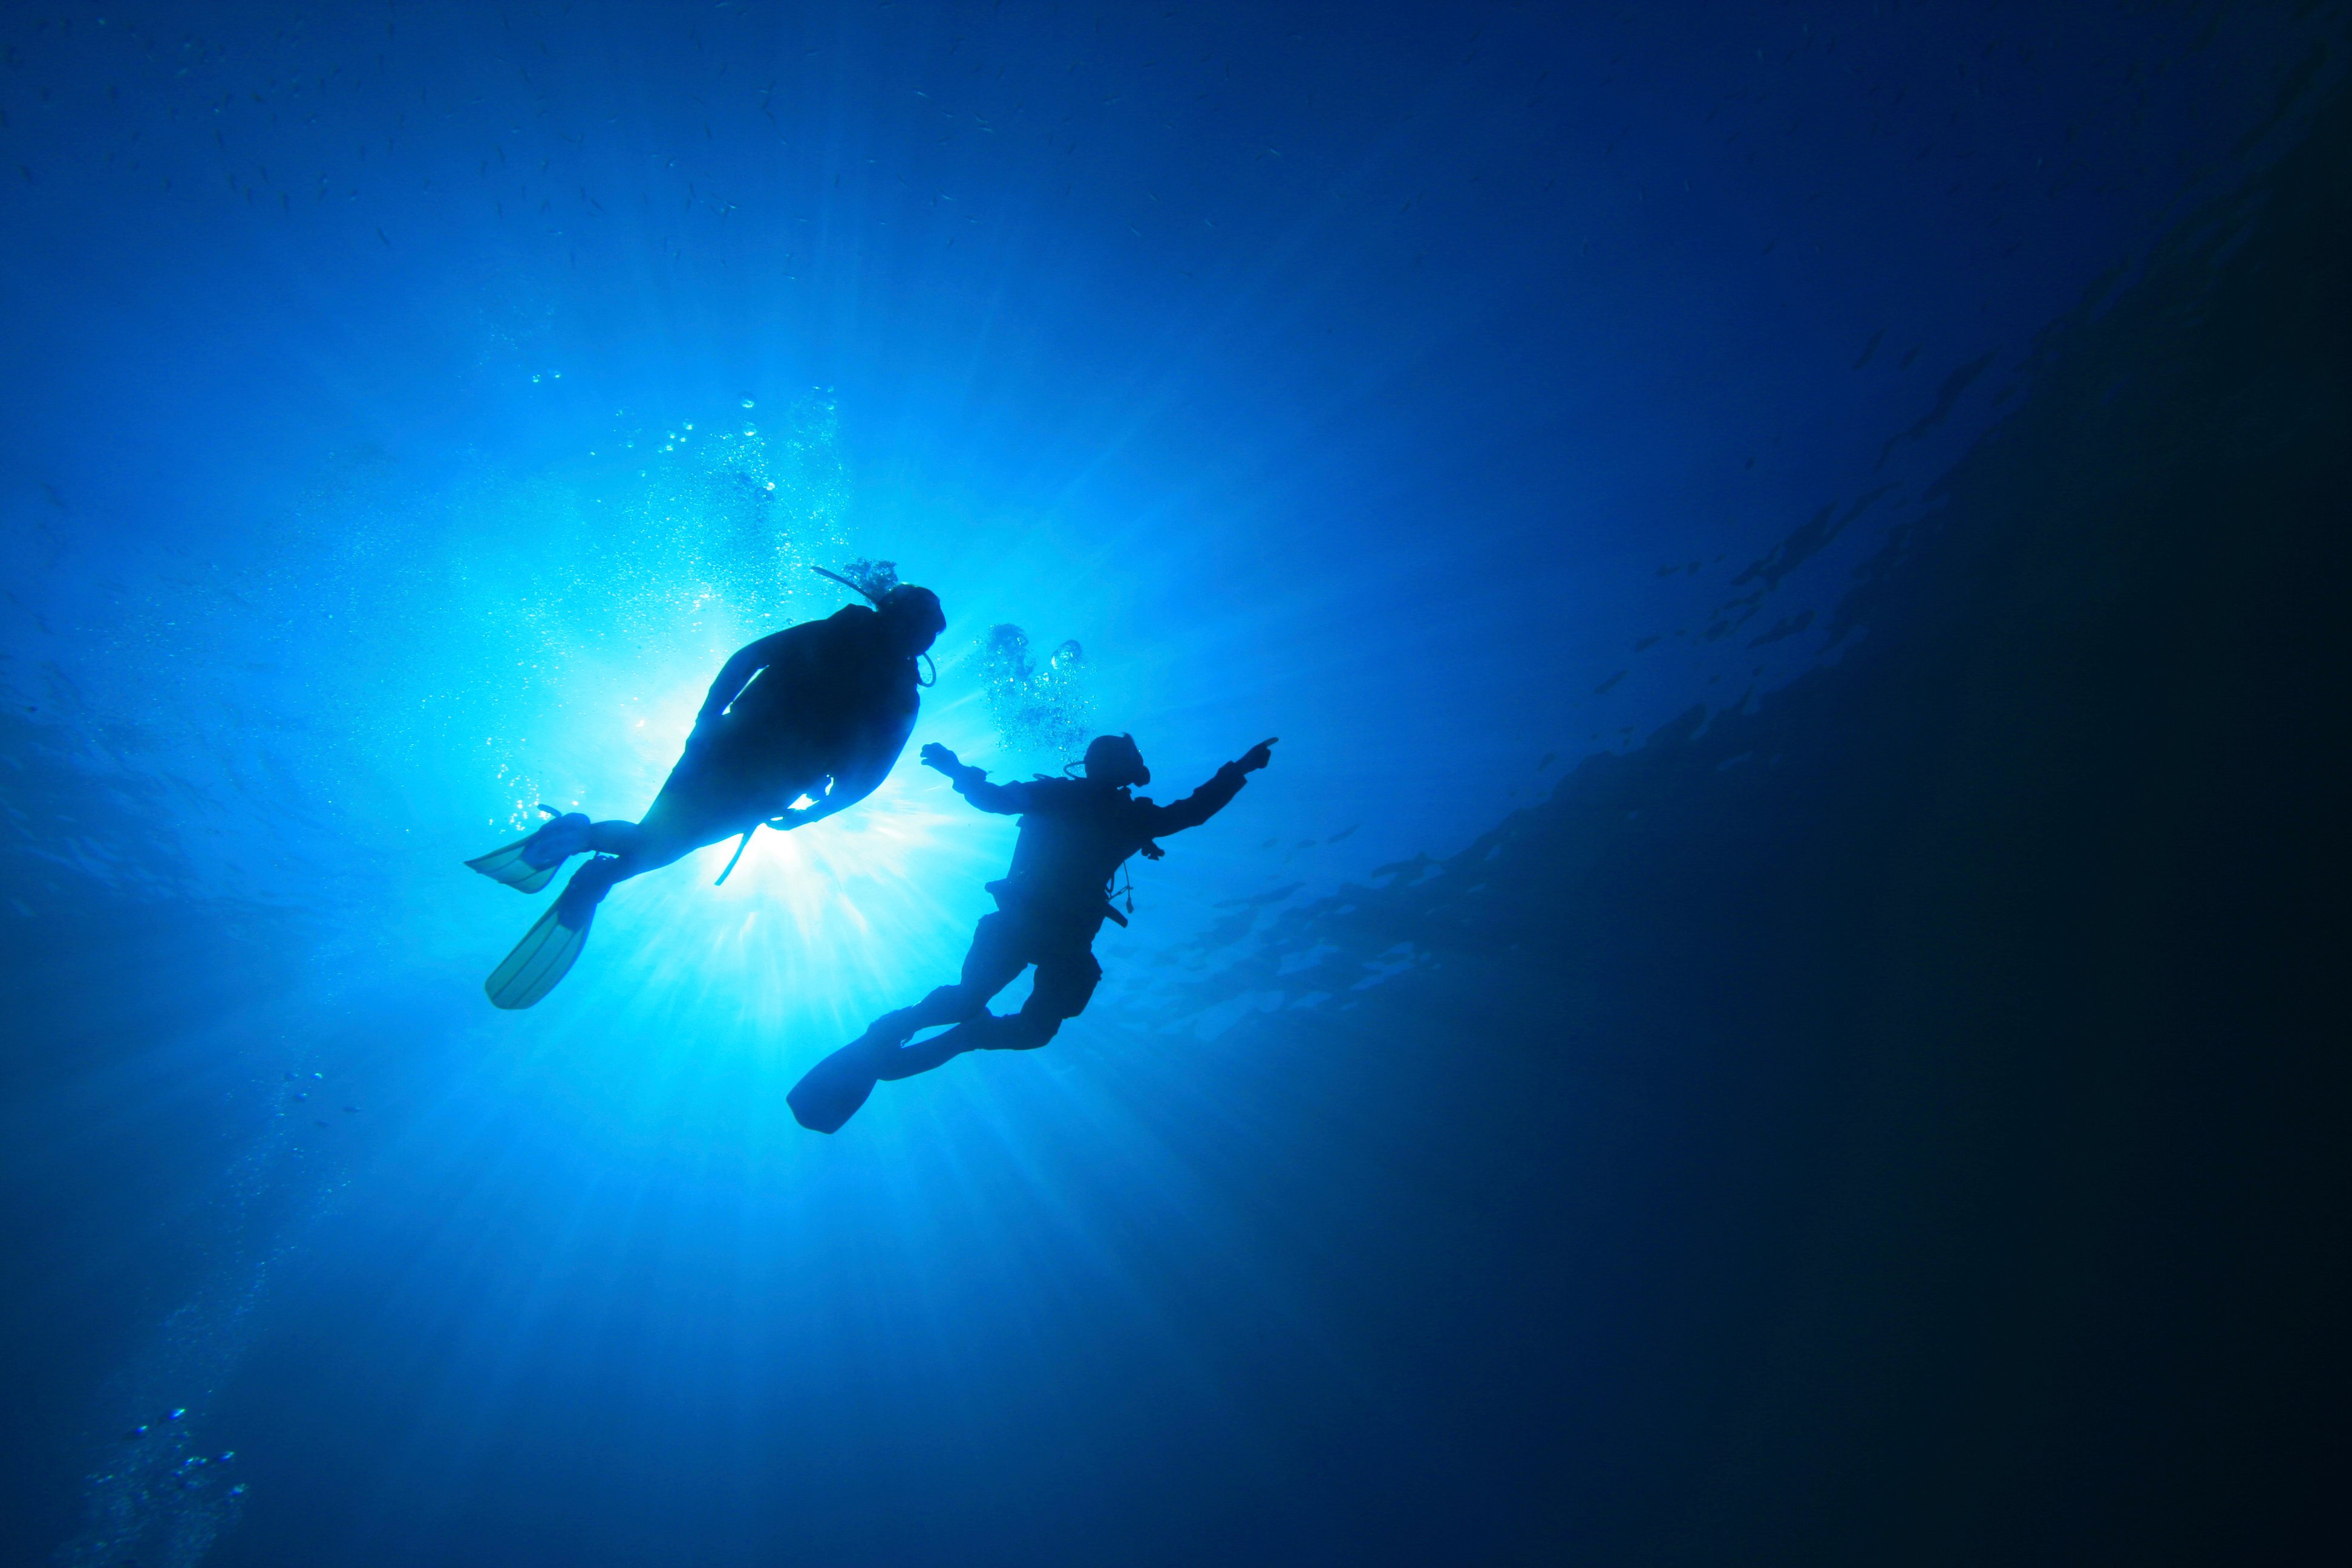 Two Scuba Divers In Silhouette